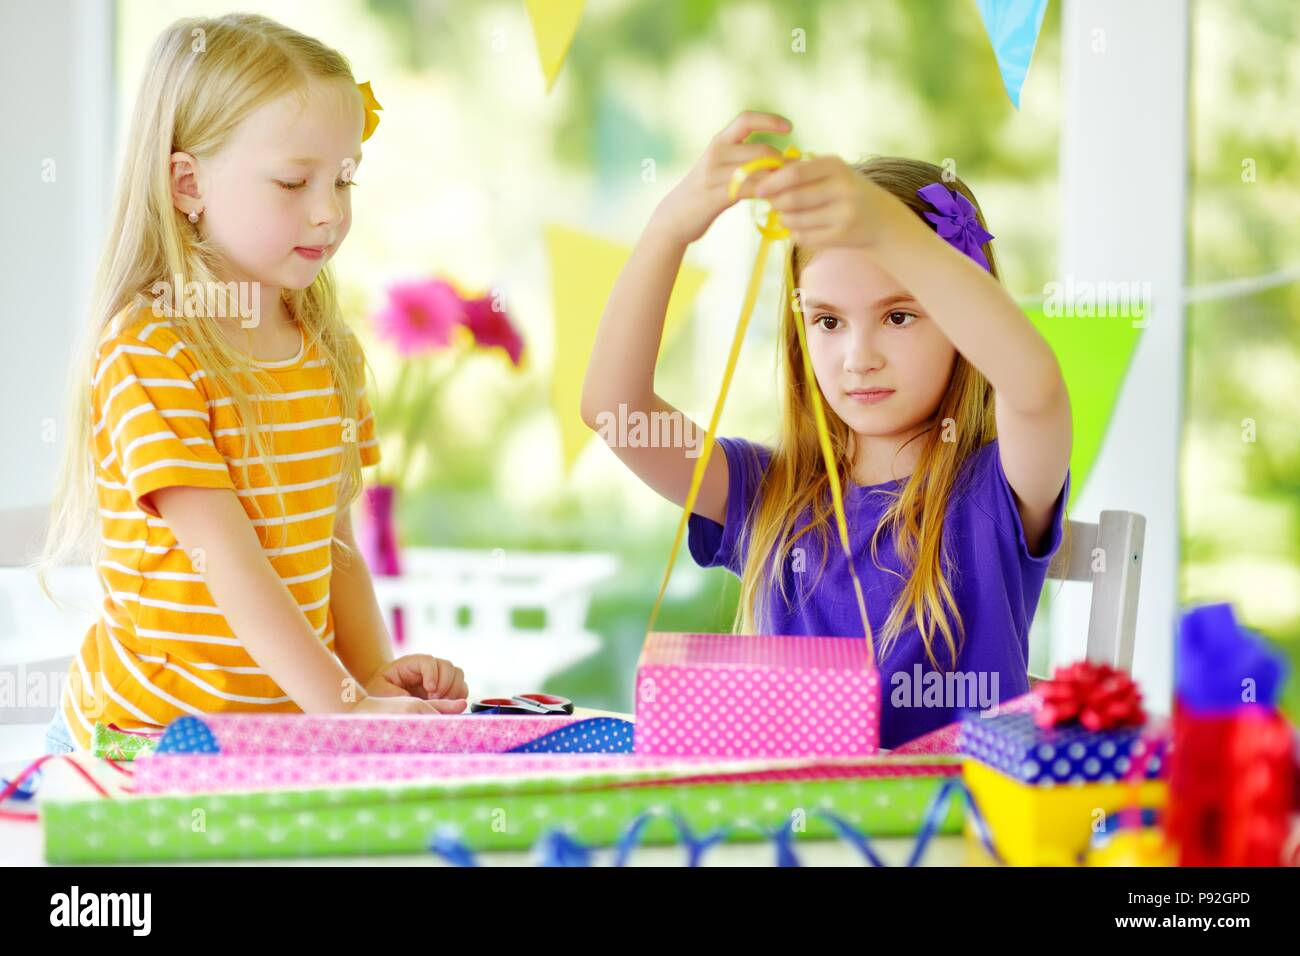 Two Cute Sisters Wrapping Gifts In Colorful Paper Adorable Siblings Birthday Presents Family Fun